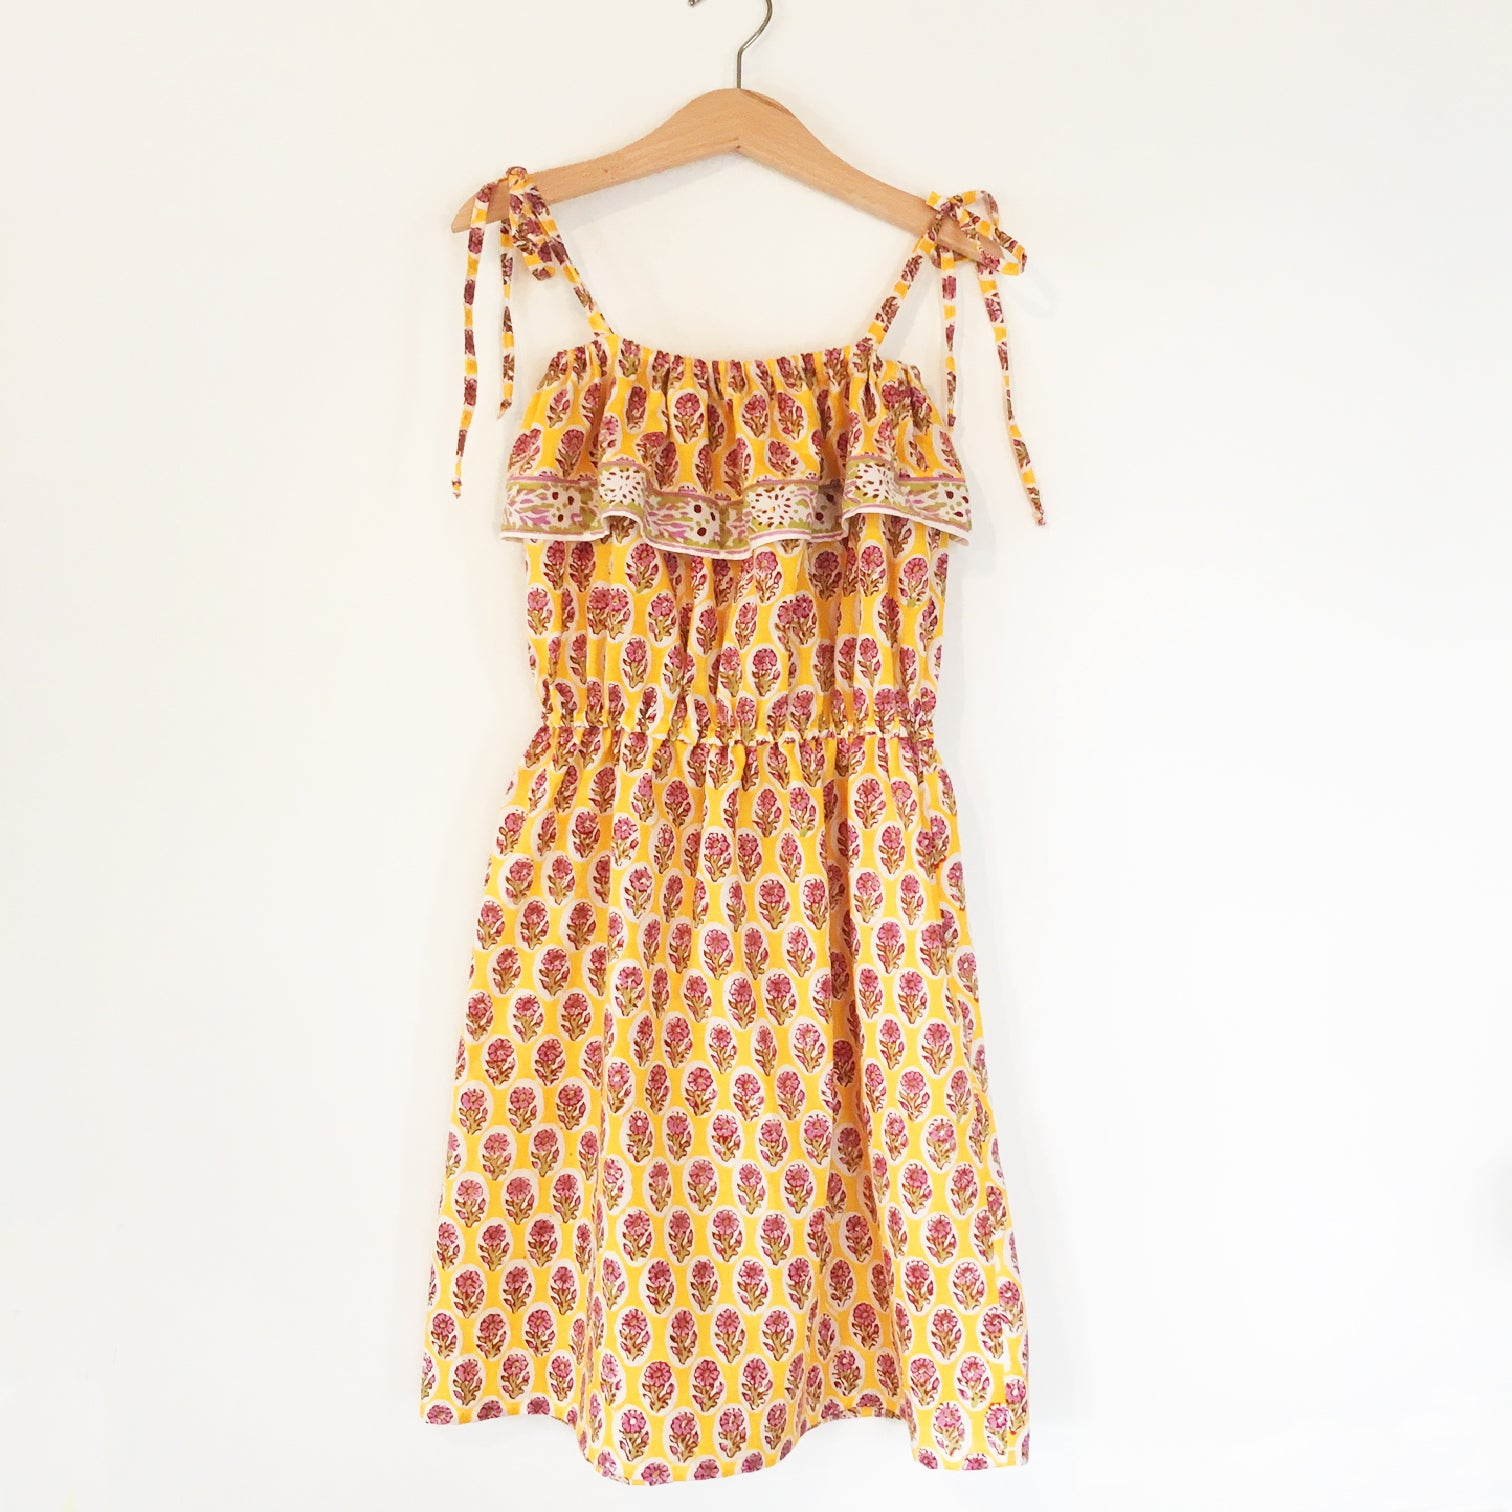 Chloe Re-purposed  fabric Dress Yellow Block Print